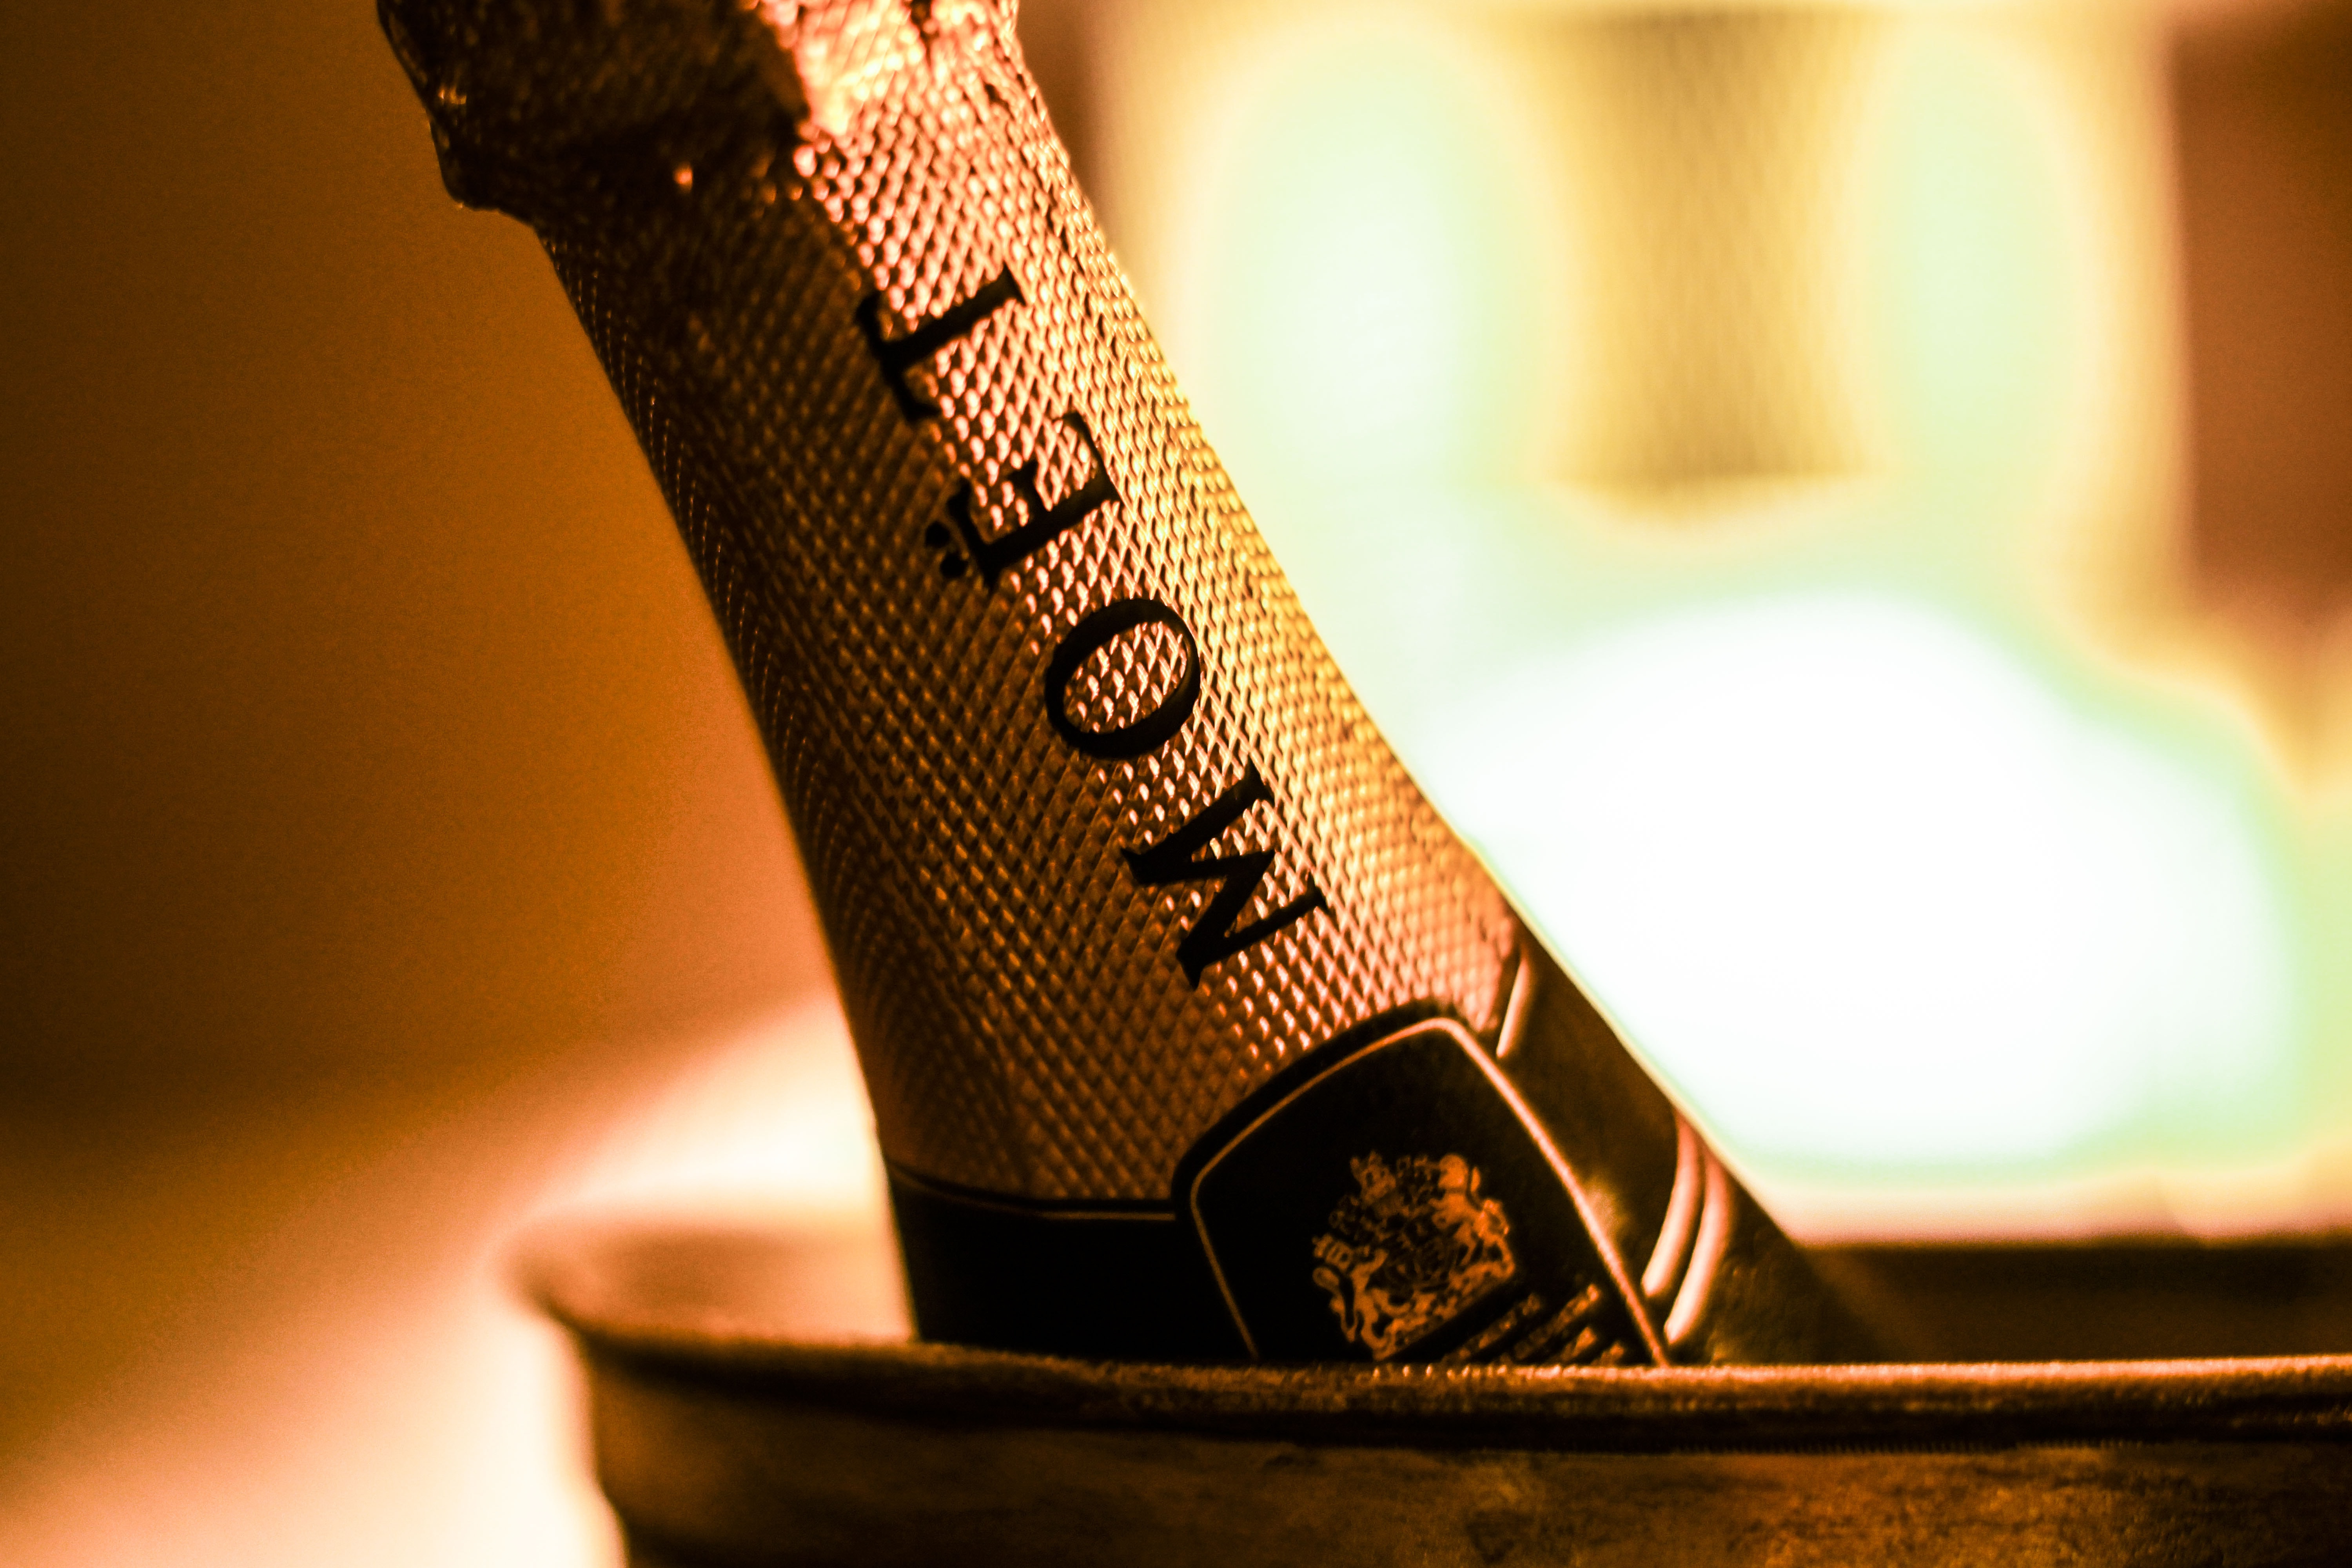 focus photography of Moet bottle inside bucket